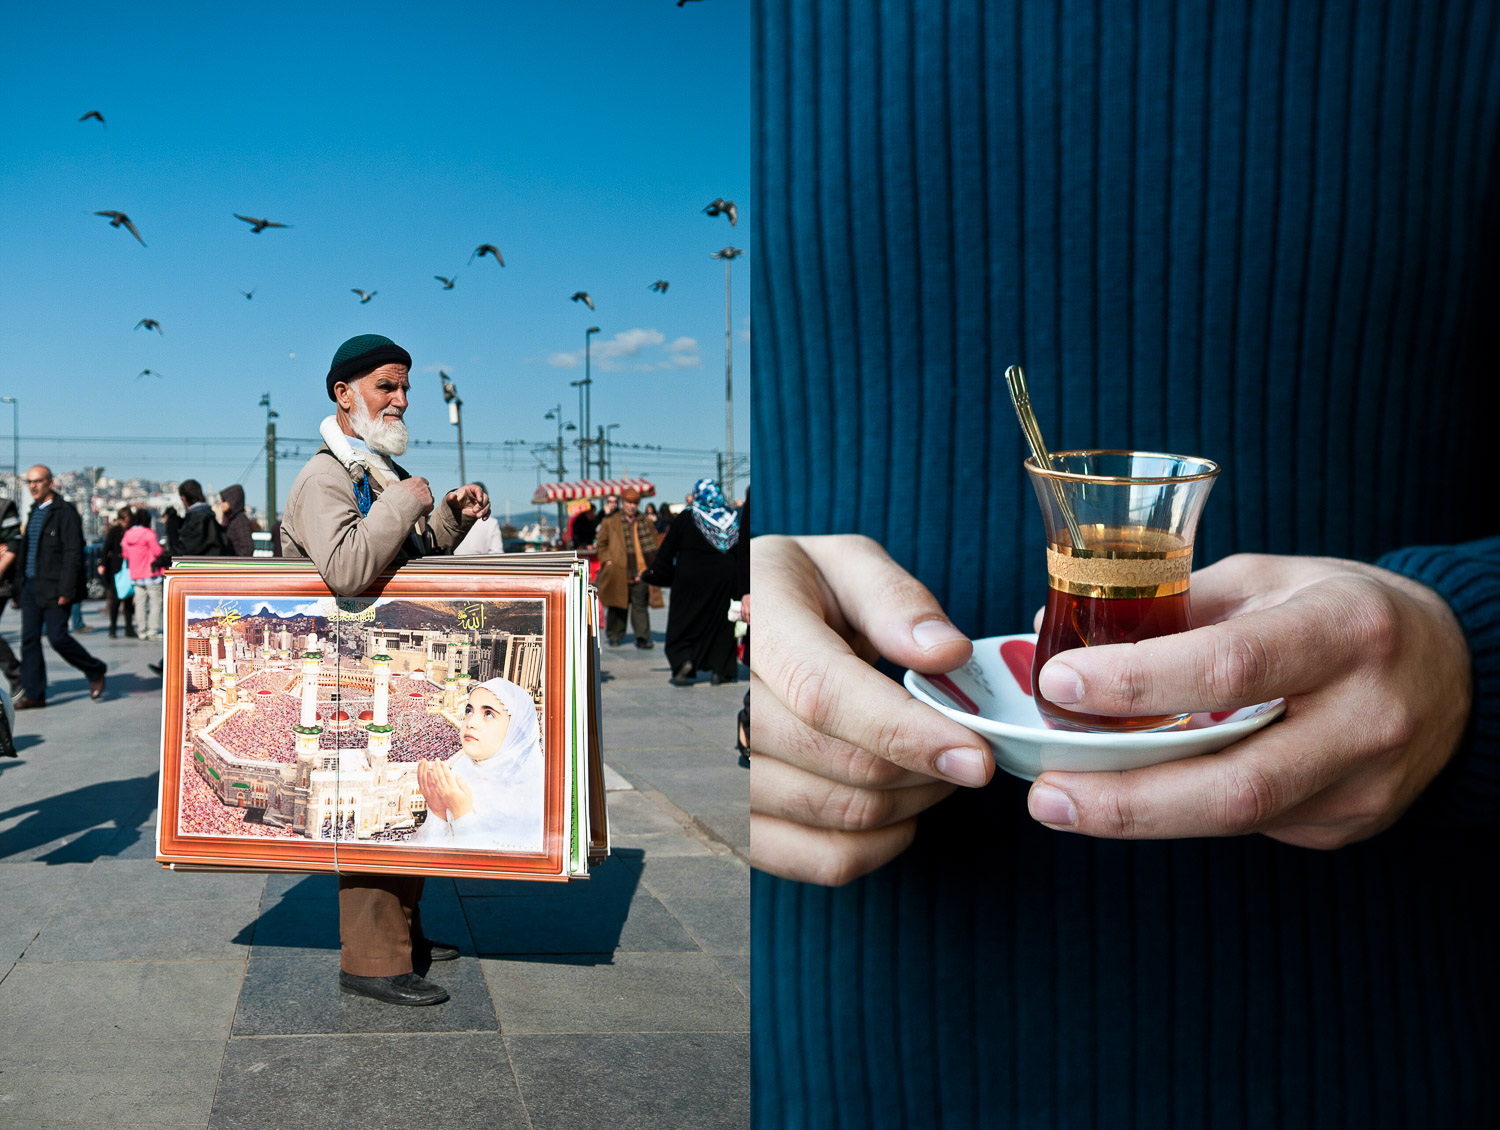 Turkish man holding a glass of partly finished Turkish tea outside the Spice Bazaar, Istanbul, Turkey, on the 2 April 2012.